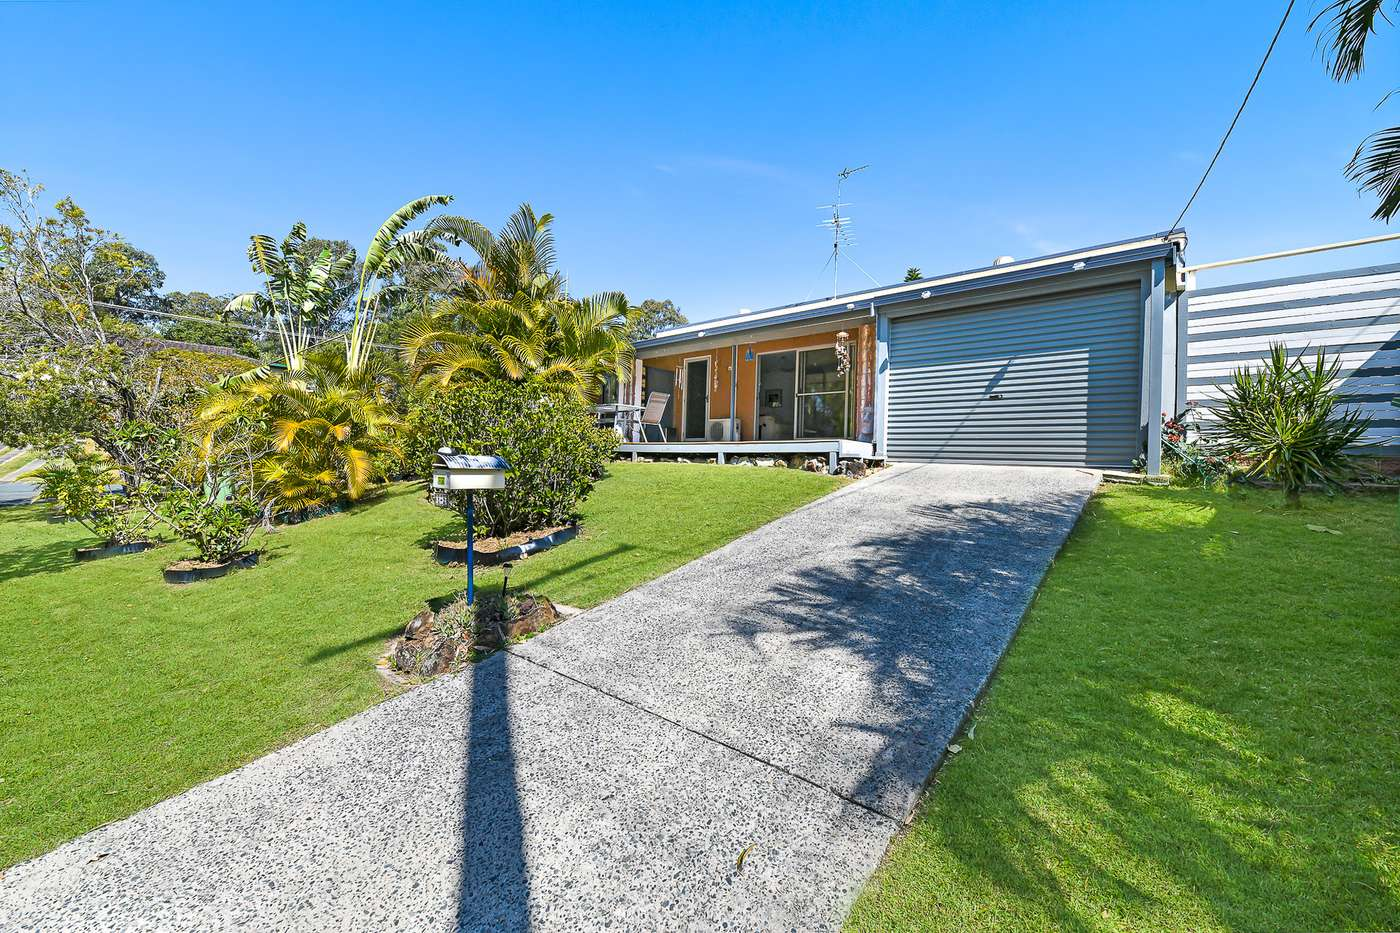 Main view of Homely house listing, 2 Conebush Crescent, Aroona, QLD 4551